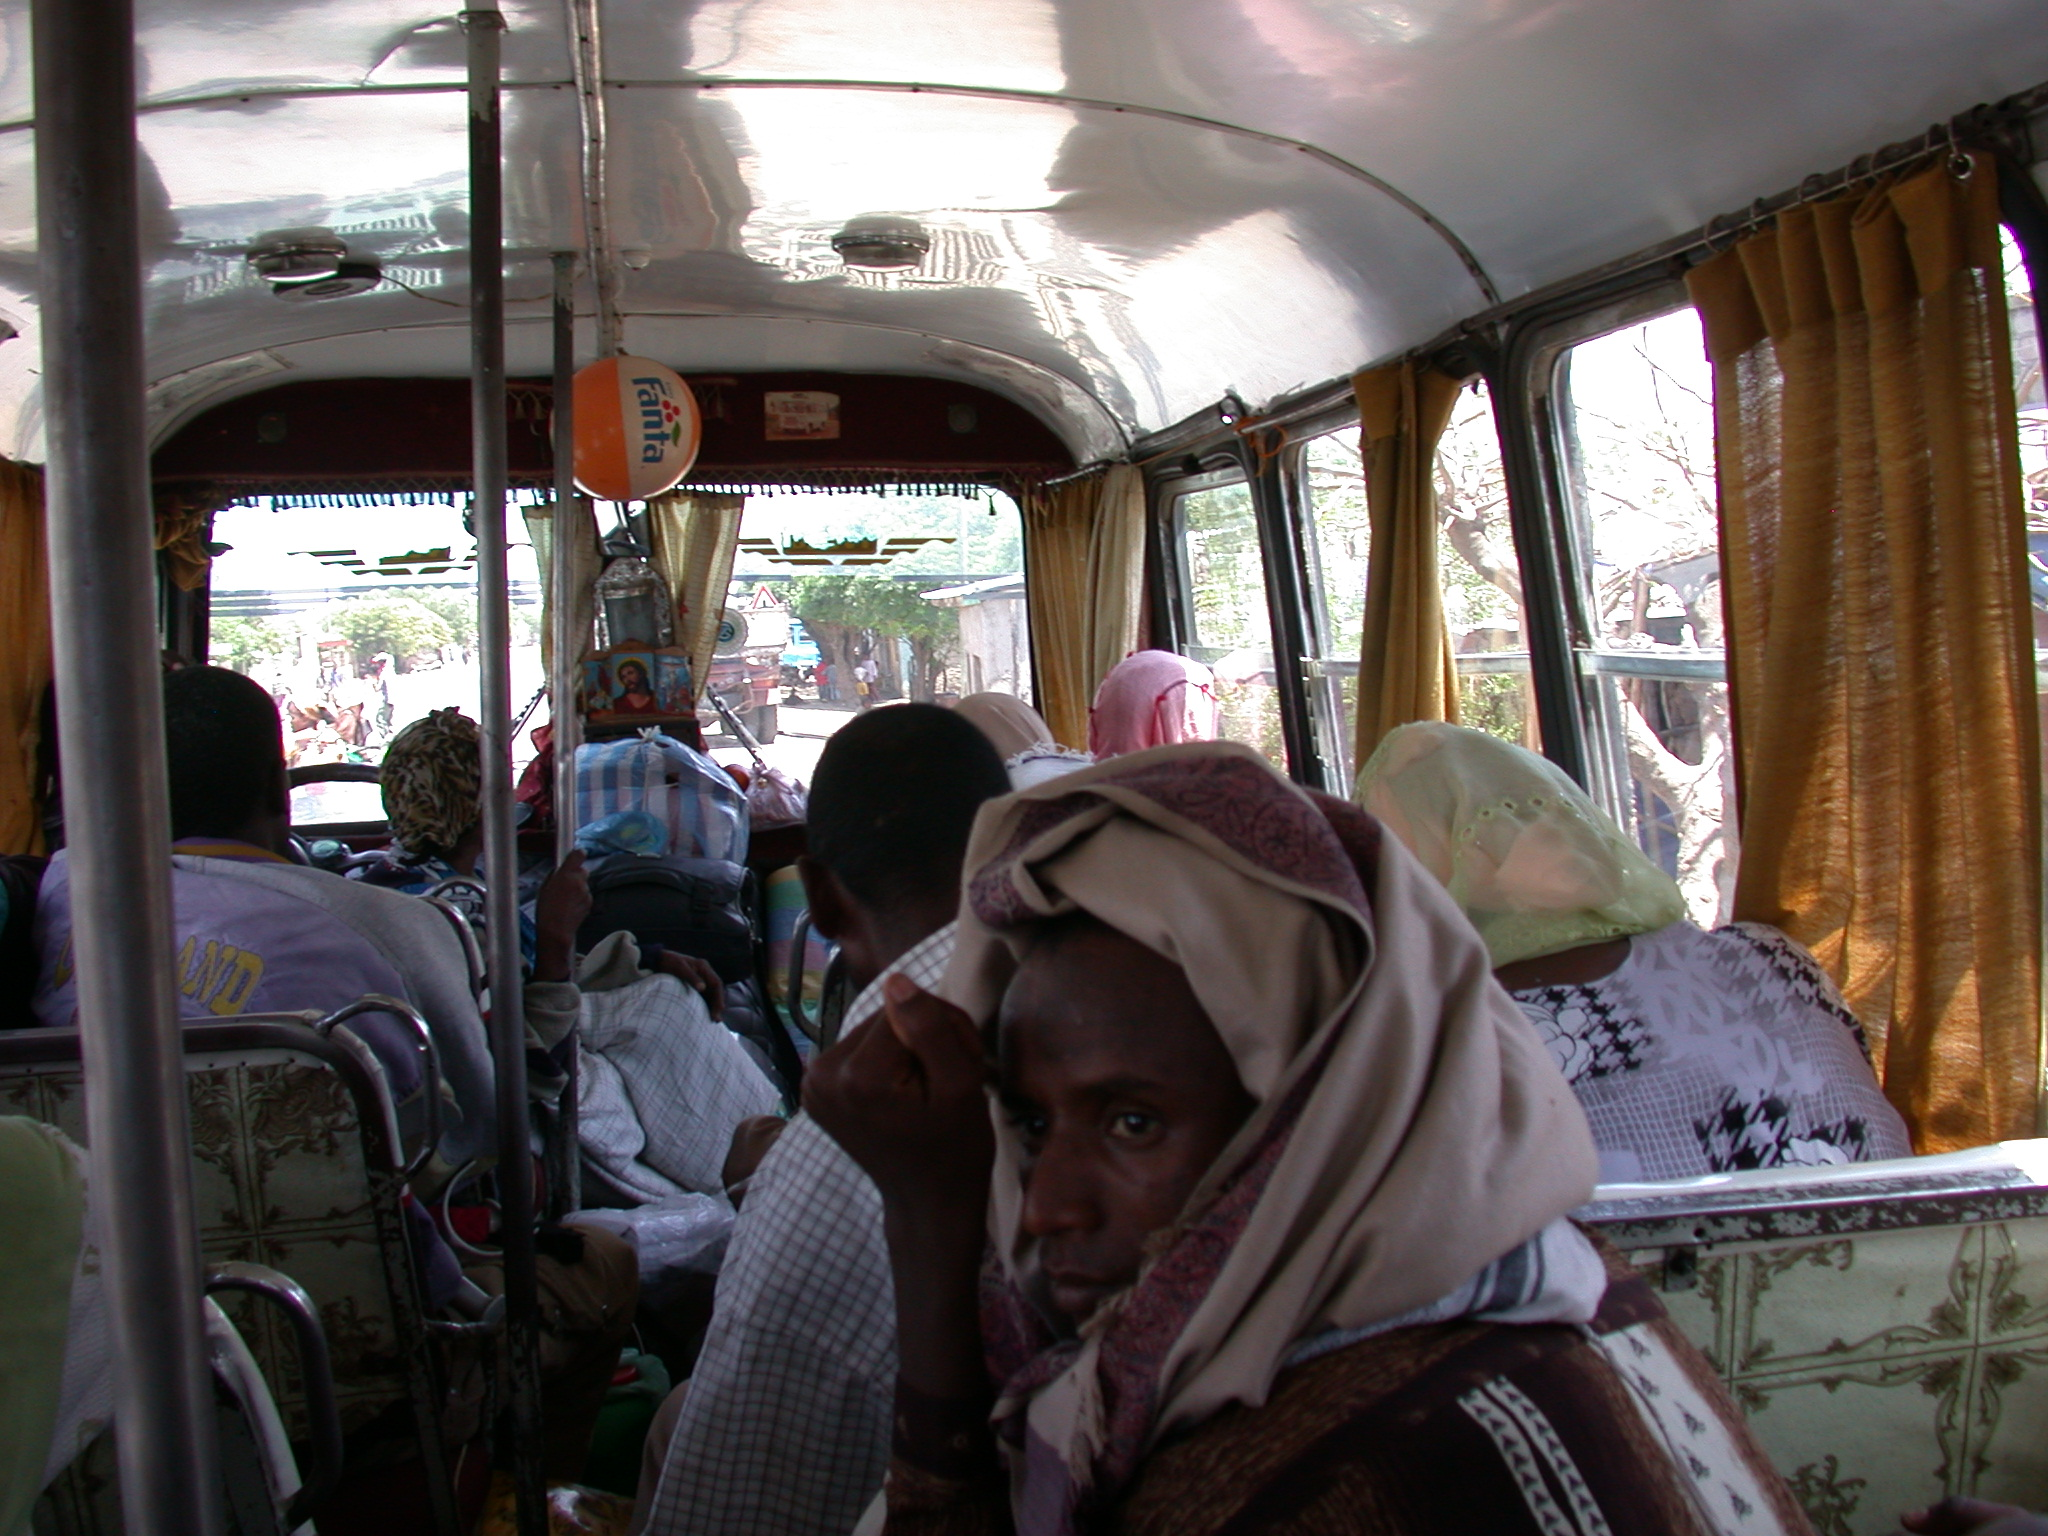 Second Bus Ride From Addis Ababa to Awash Saba, Ethiopia